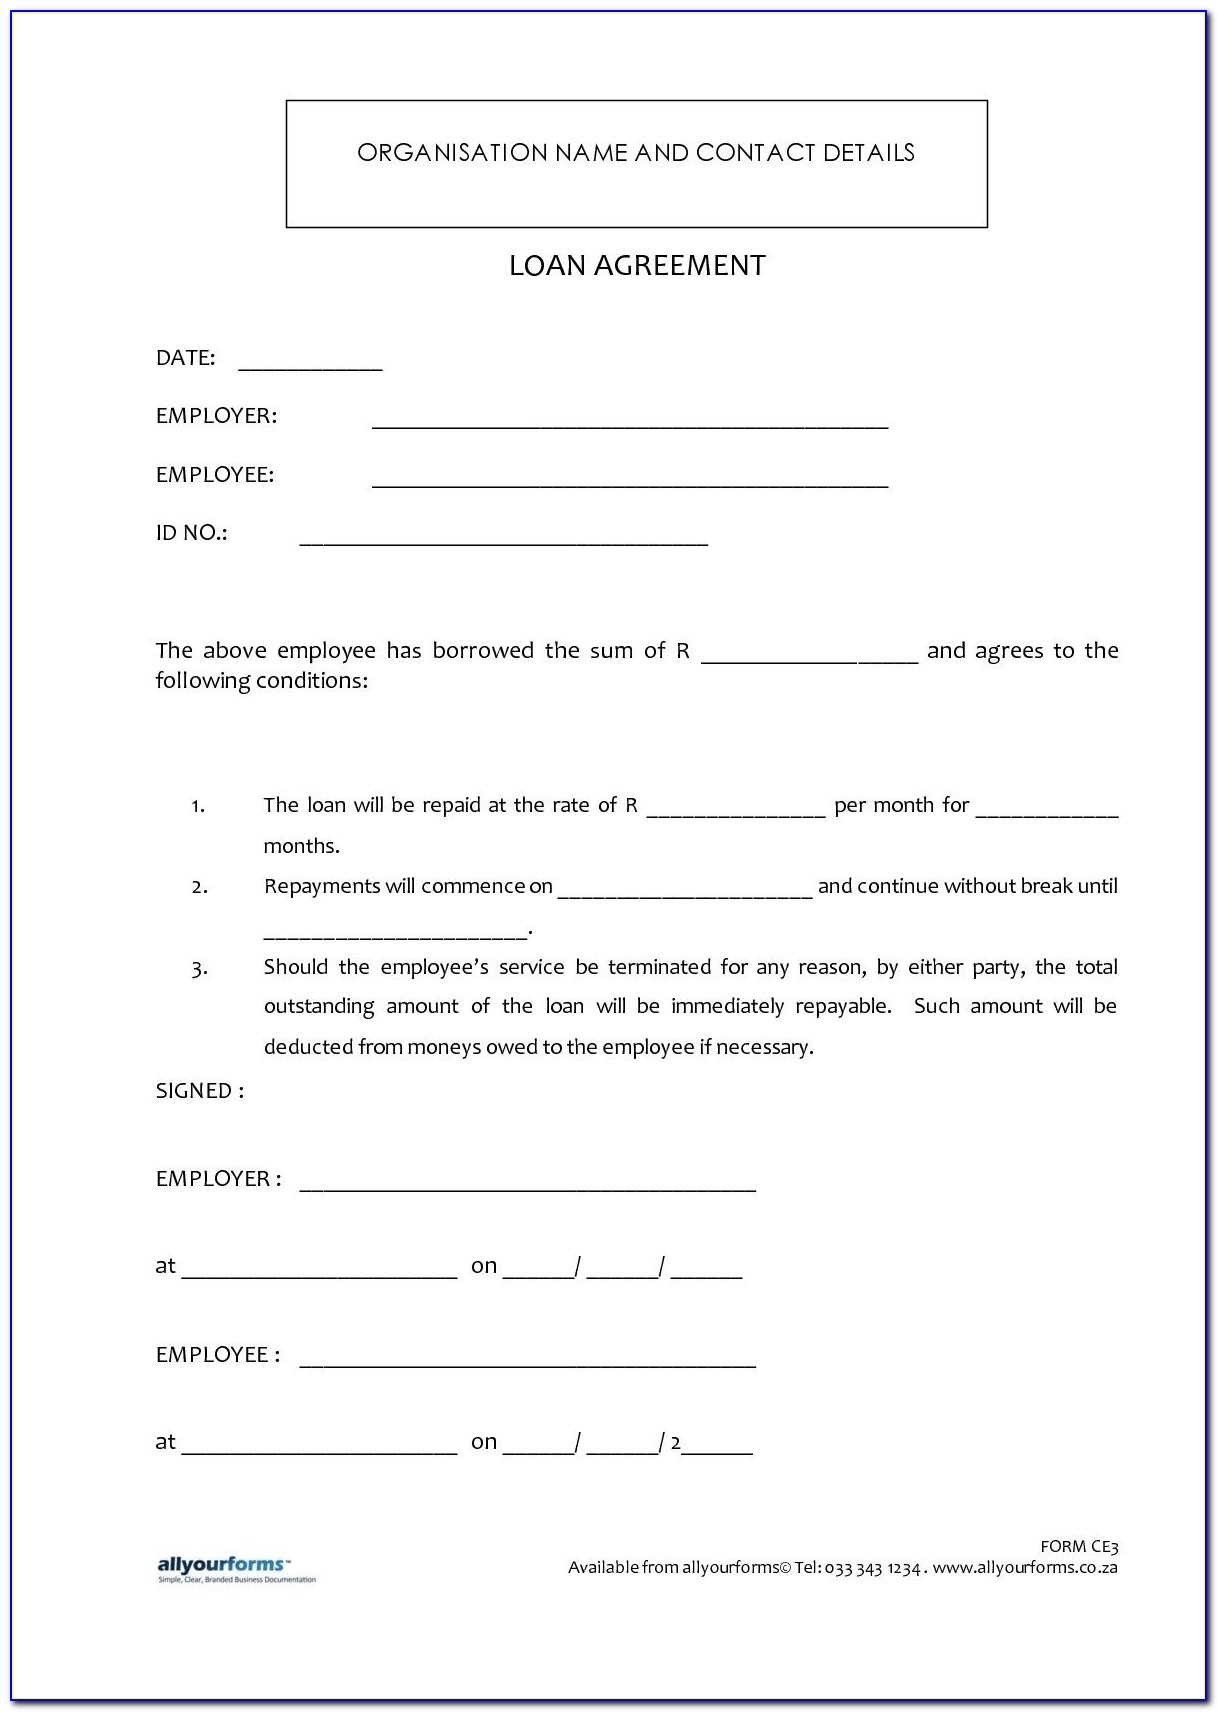 Borrow Money Contract Form